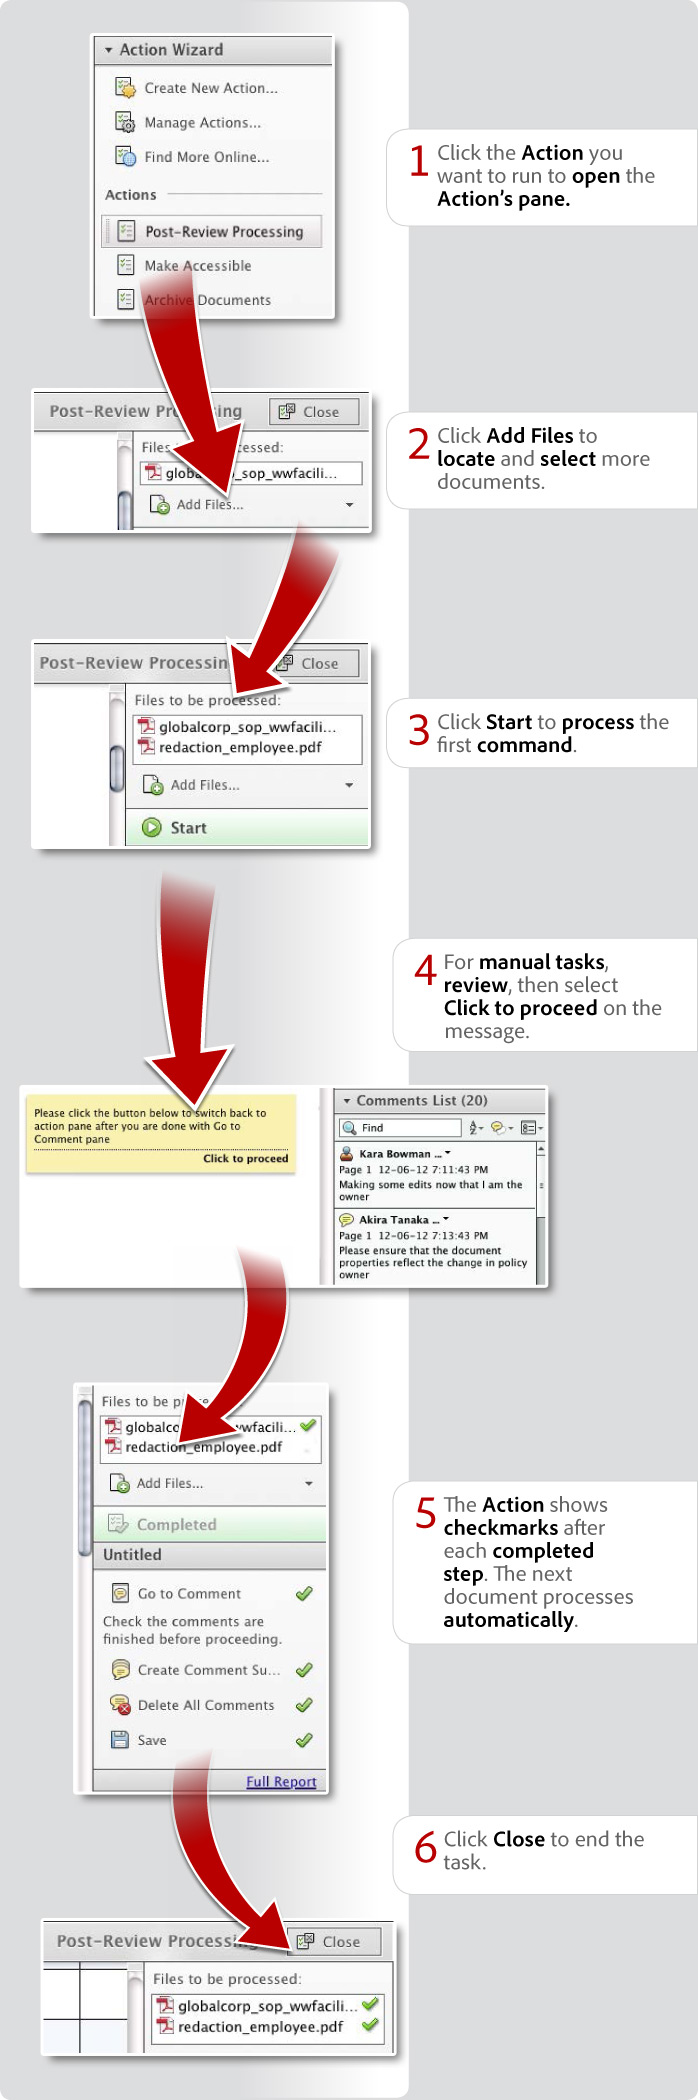 How to work with Actions in Acrobat XI Pro